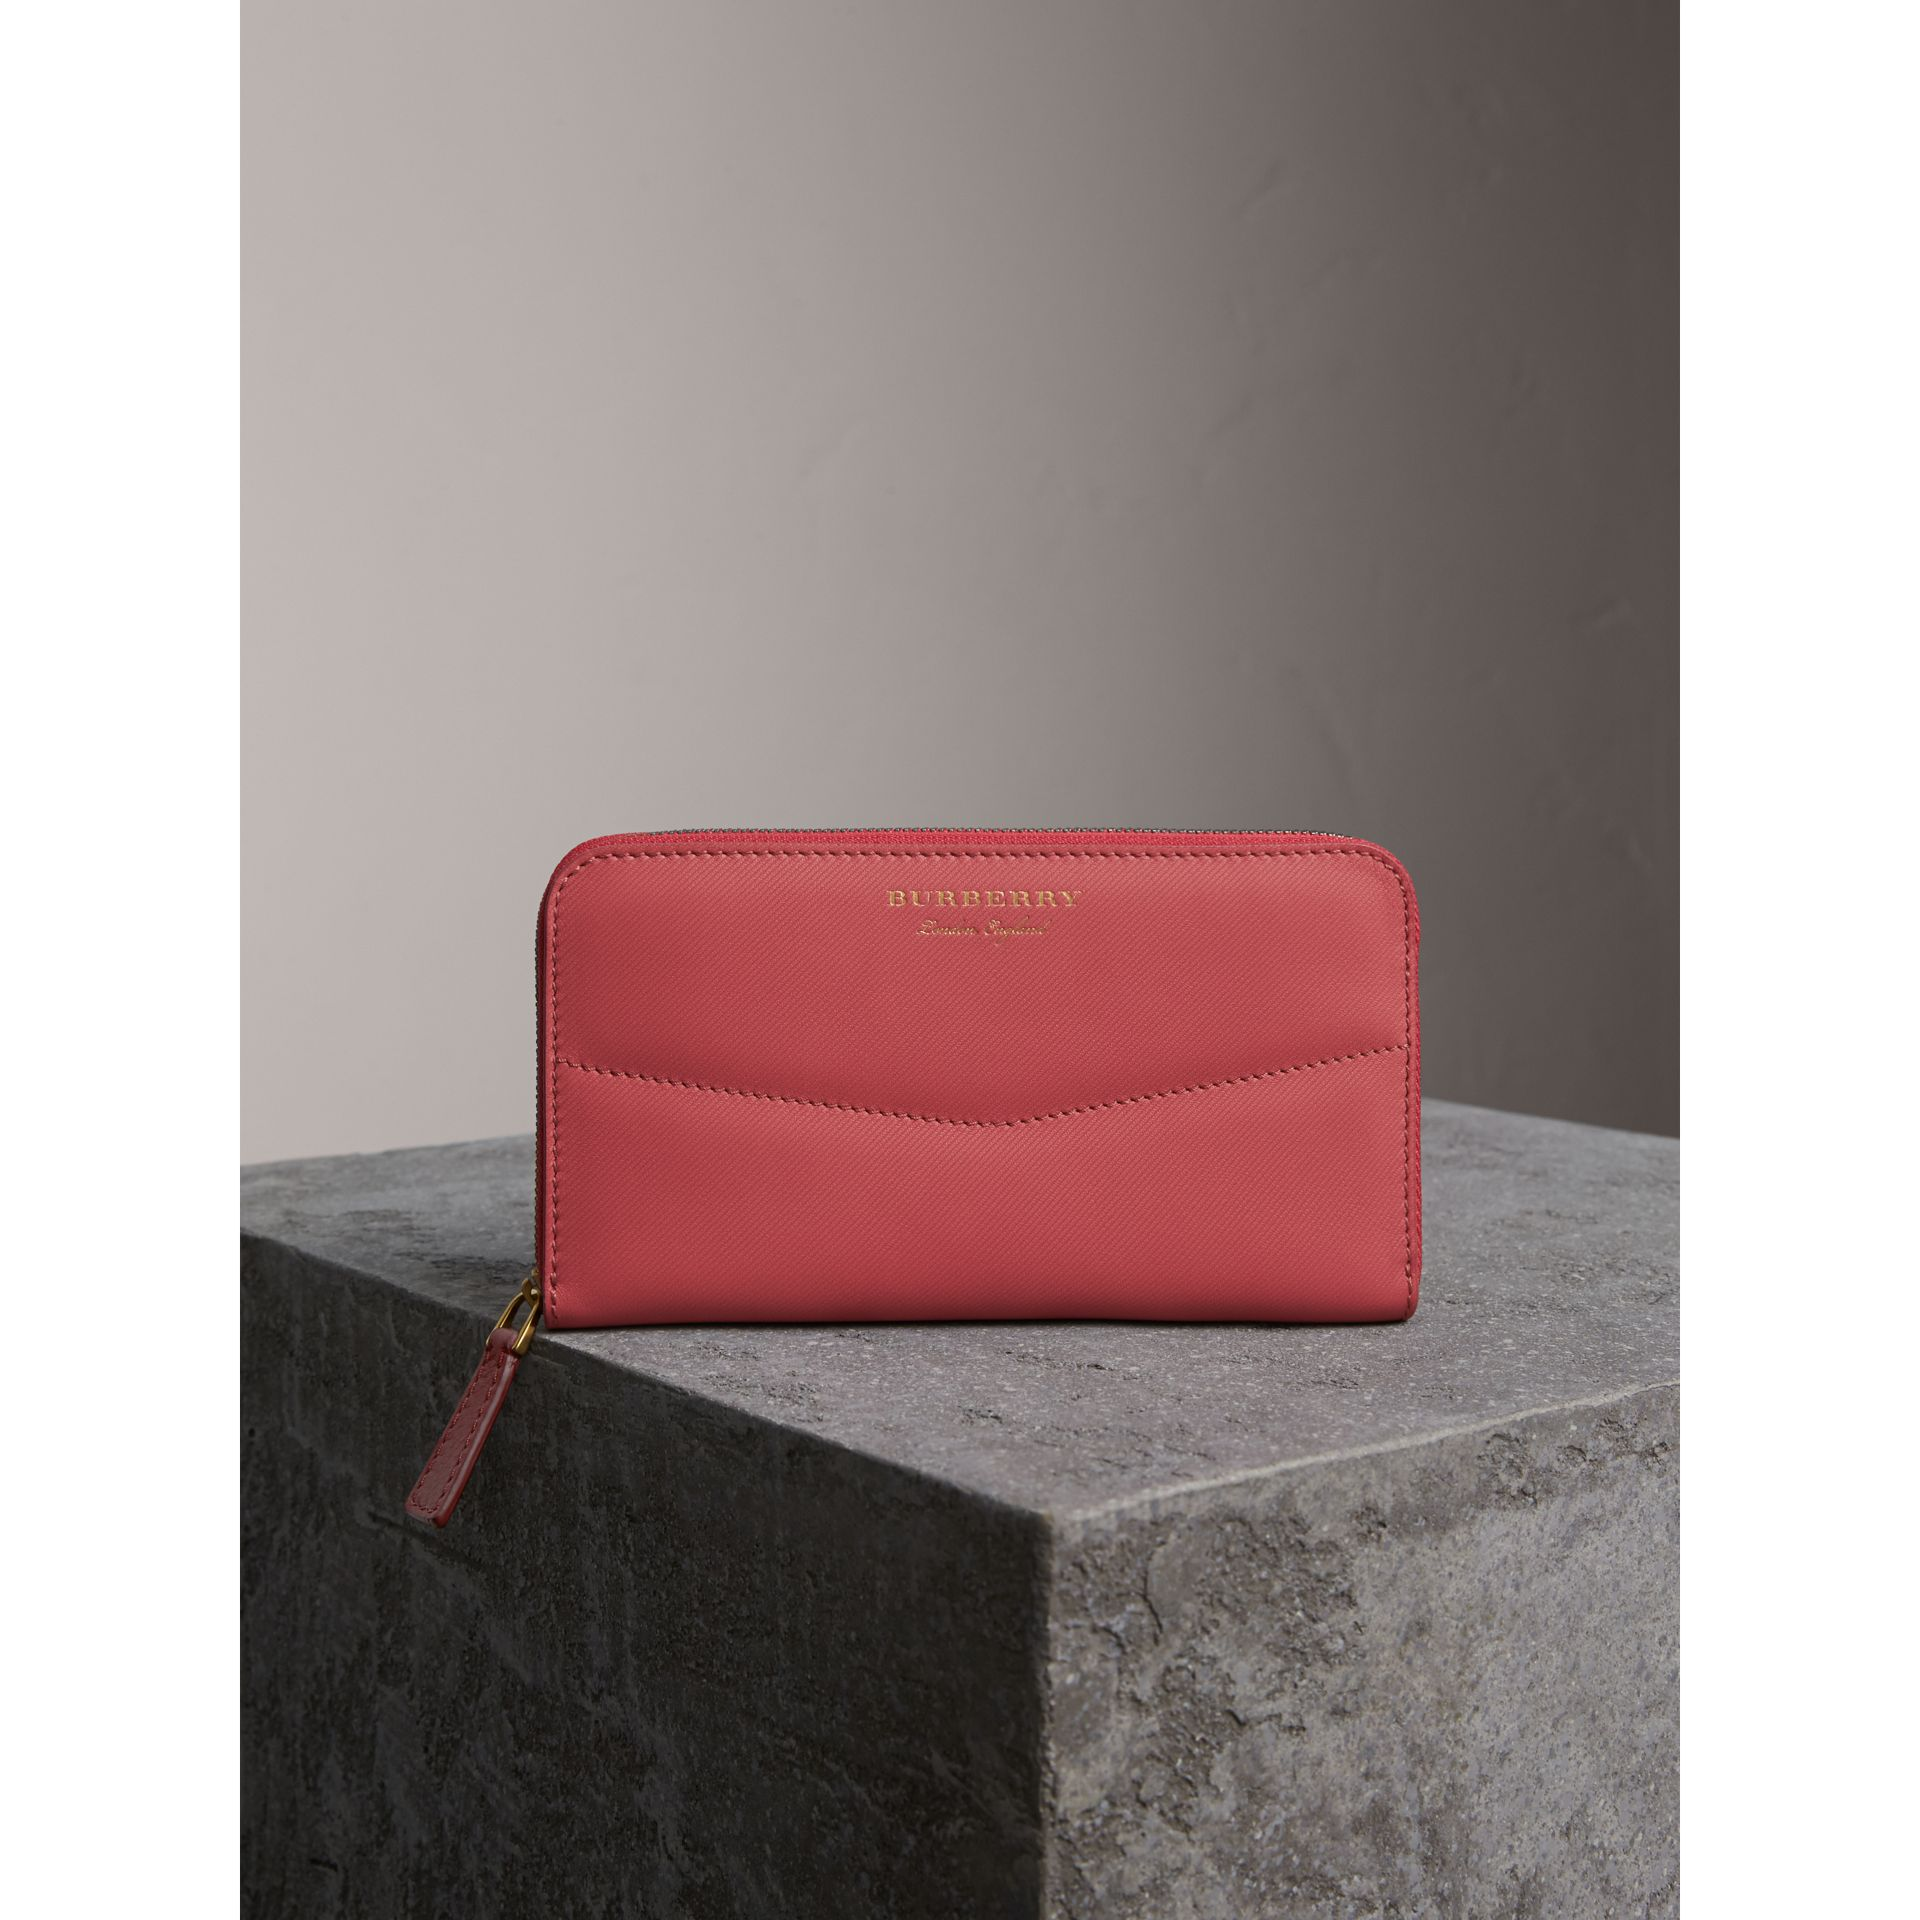 Two-tone Trench Leather Ziparound Wallet in Blossom Pink - Women | Burberry - gallery image 6